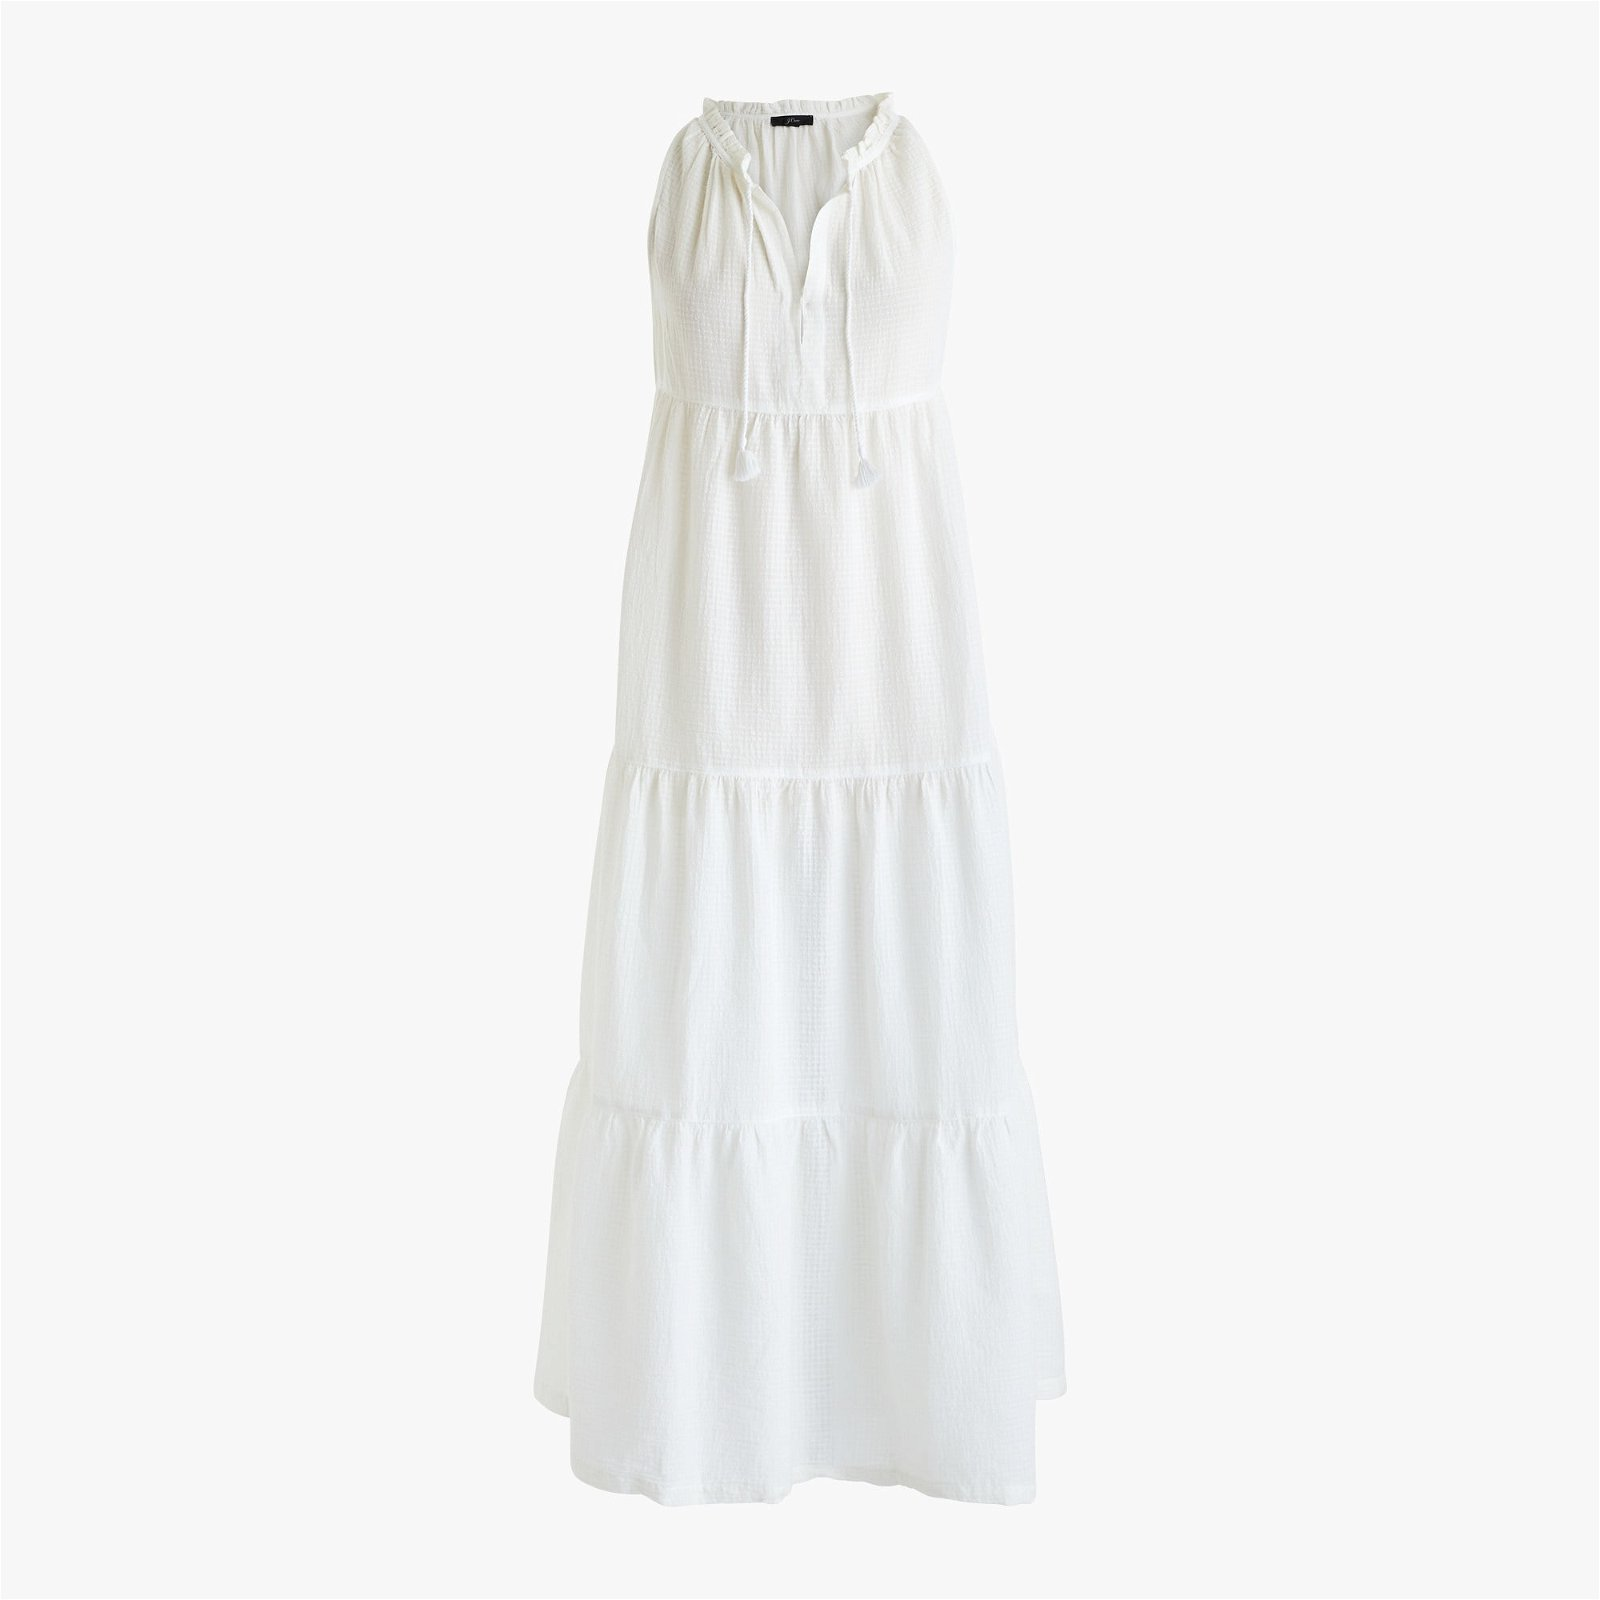 Tiered maxi beach dress in crinkle cotton